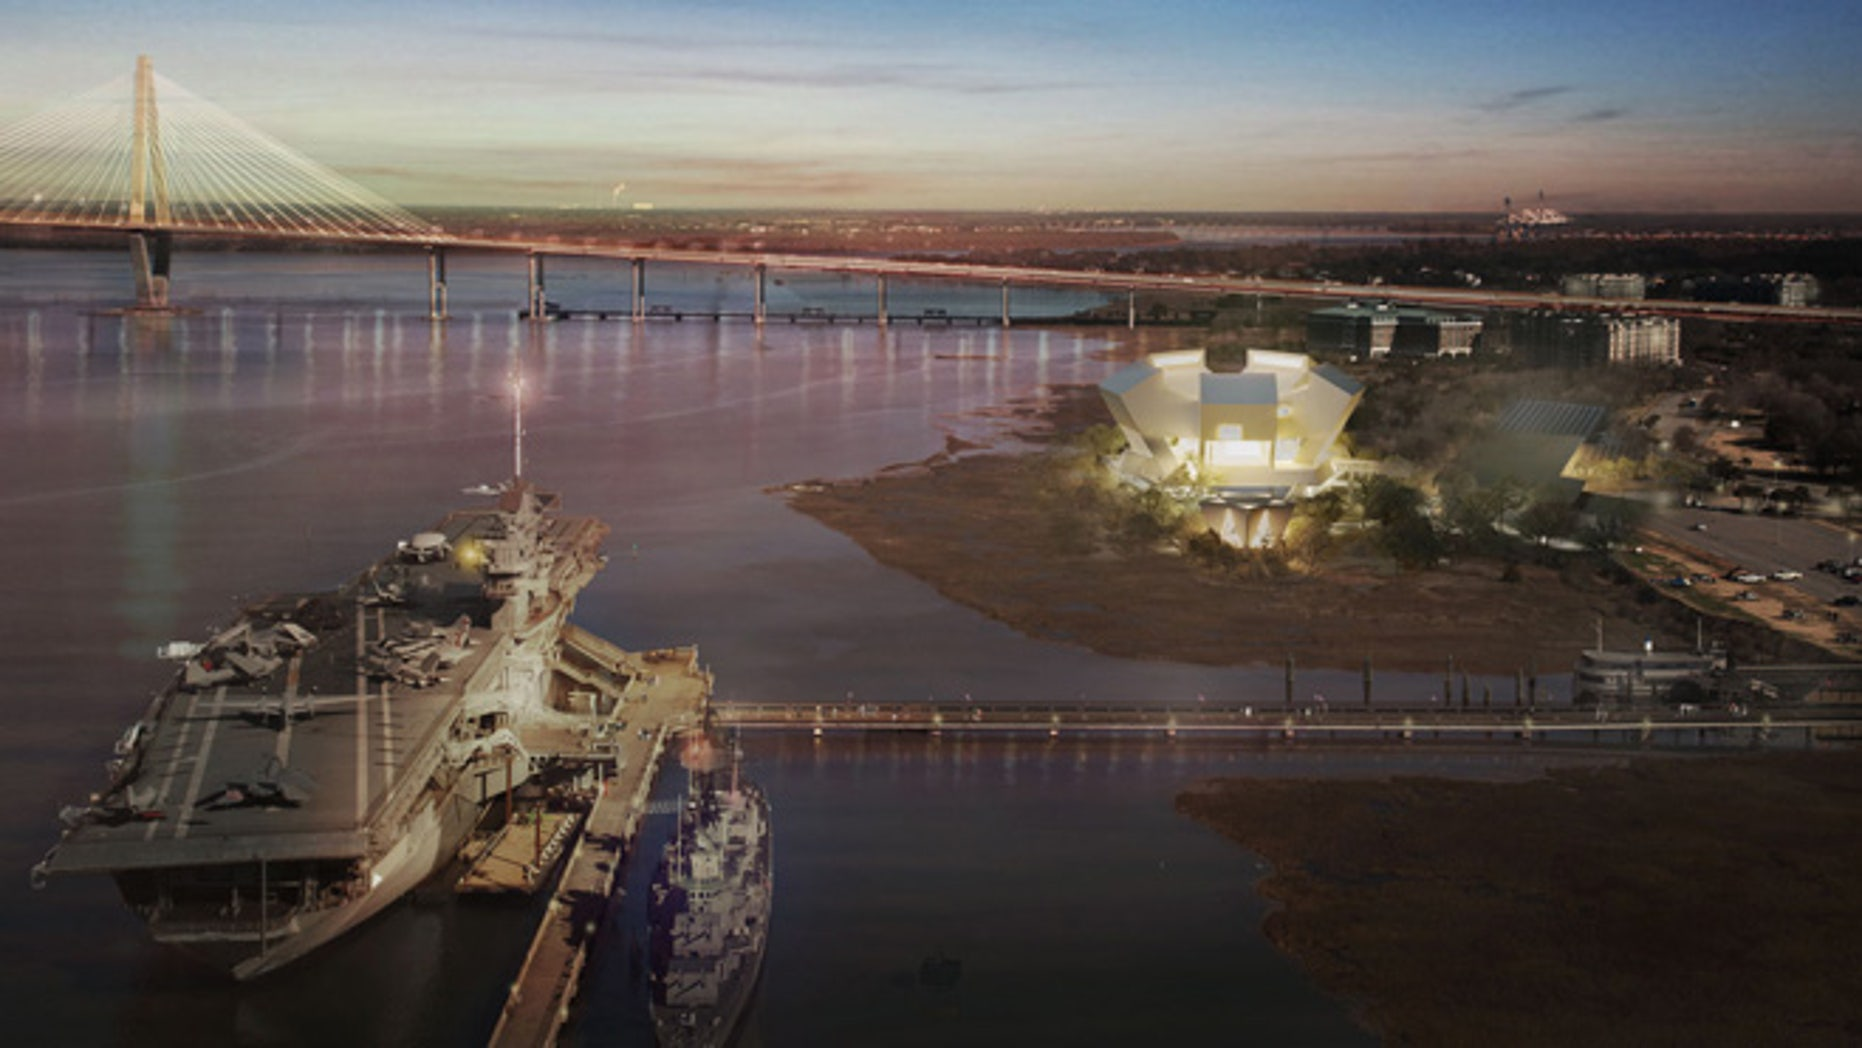 This architectural rendering shows the proposed National Medal of Honor Museum at night. The USS Yorktown is in the foreground and the Ravenel Bridge behind the museum. The star-shaped chapel can be seen directly in front of the museum building. (National Medal of Honor Museum)